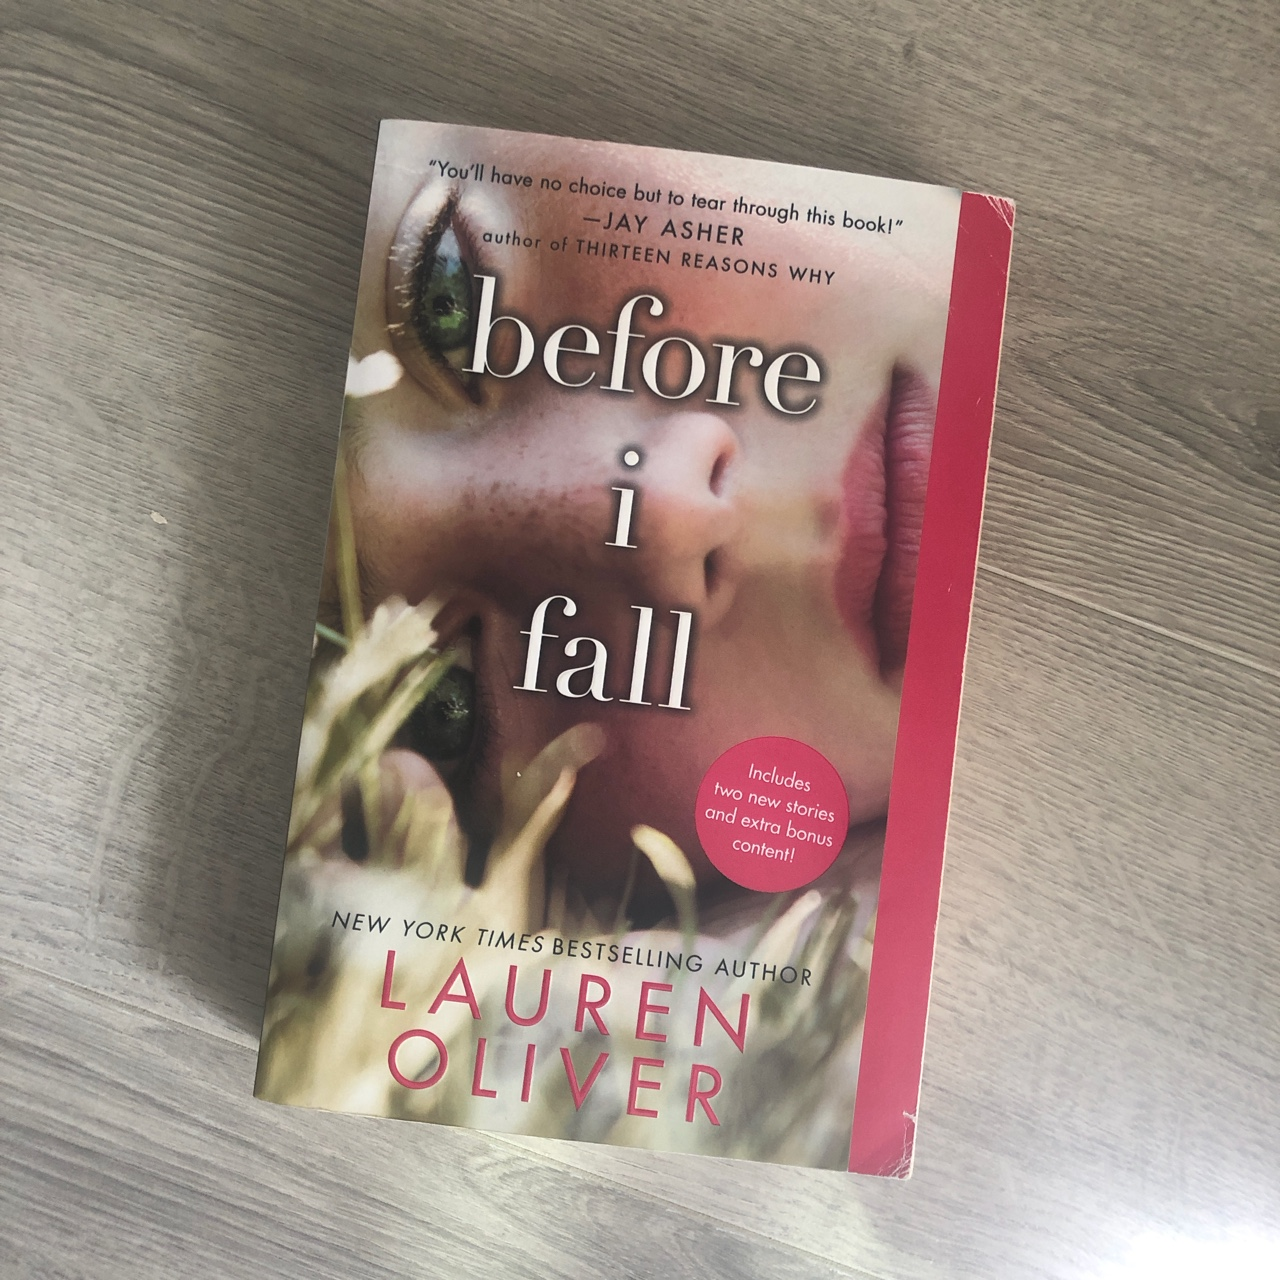 Product Image 1 - Before I Fall paperback by